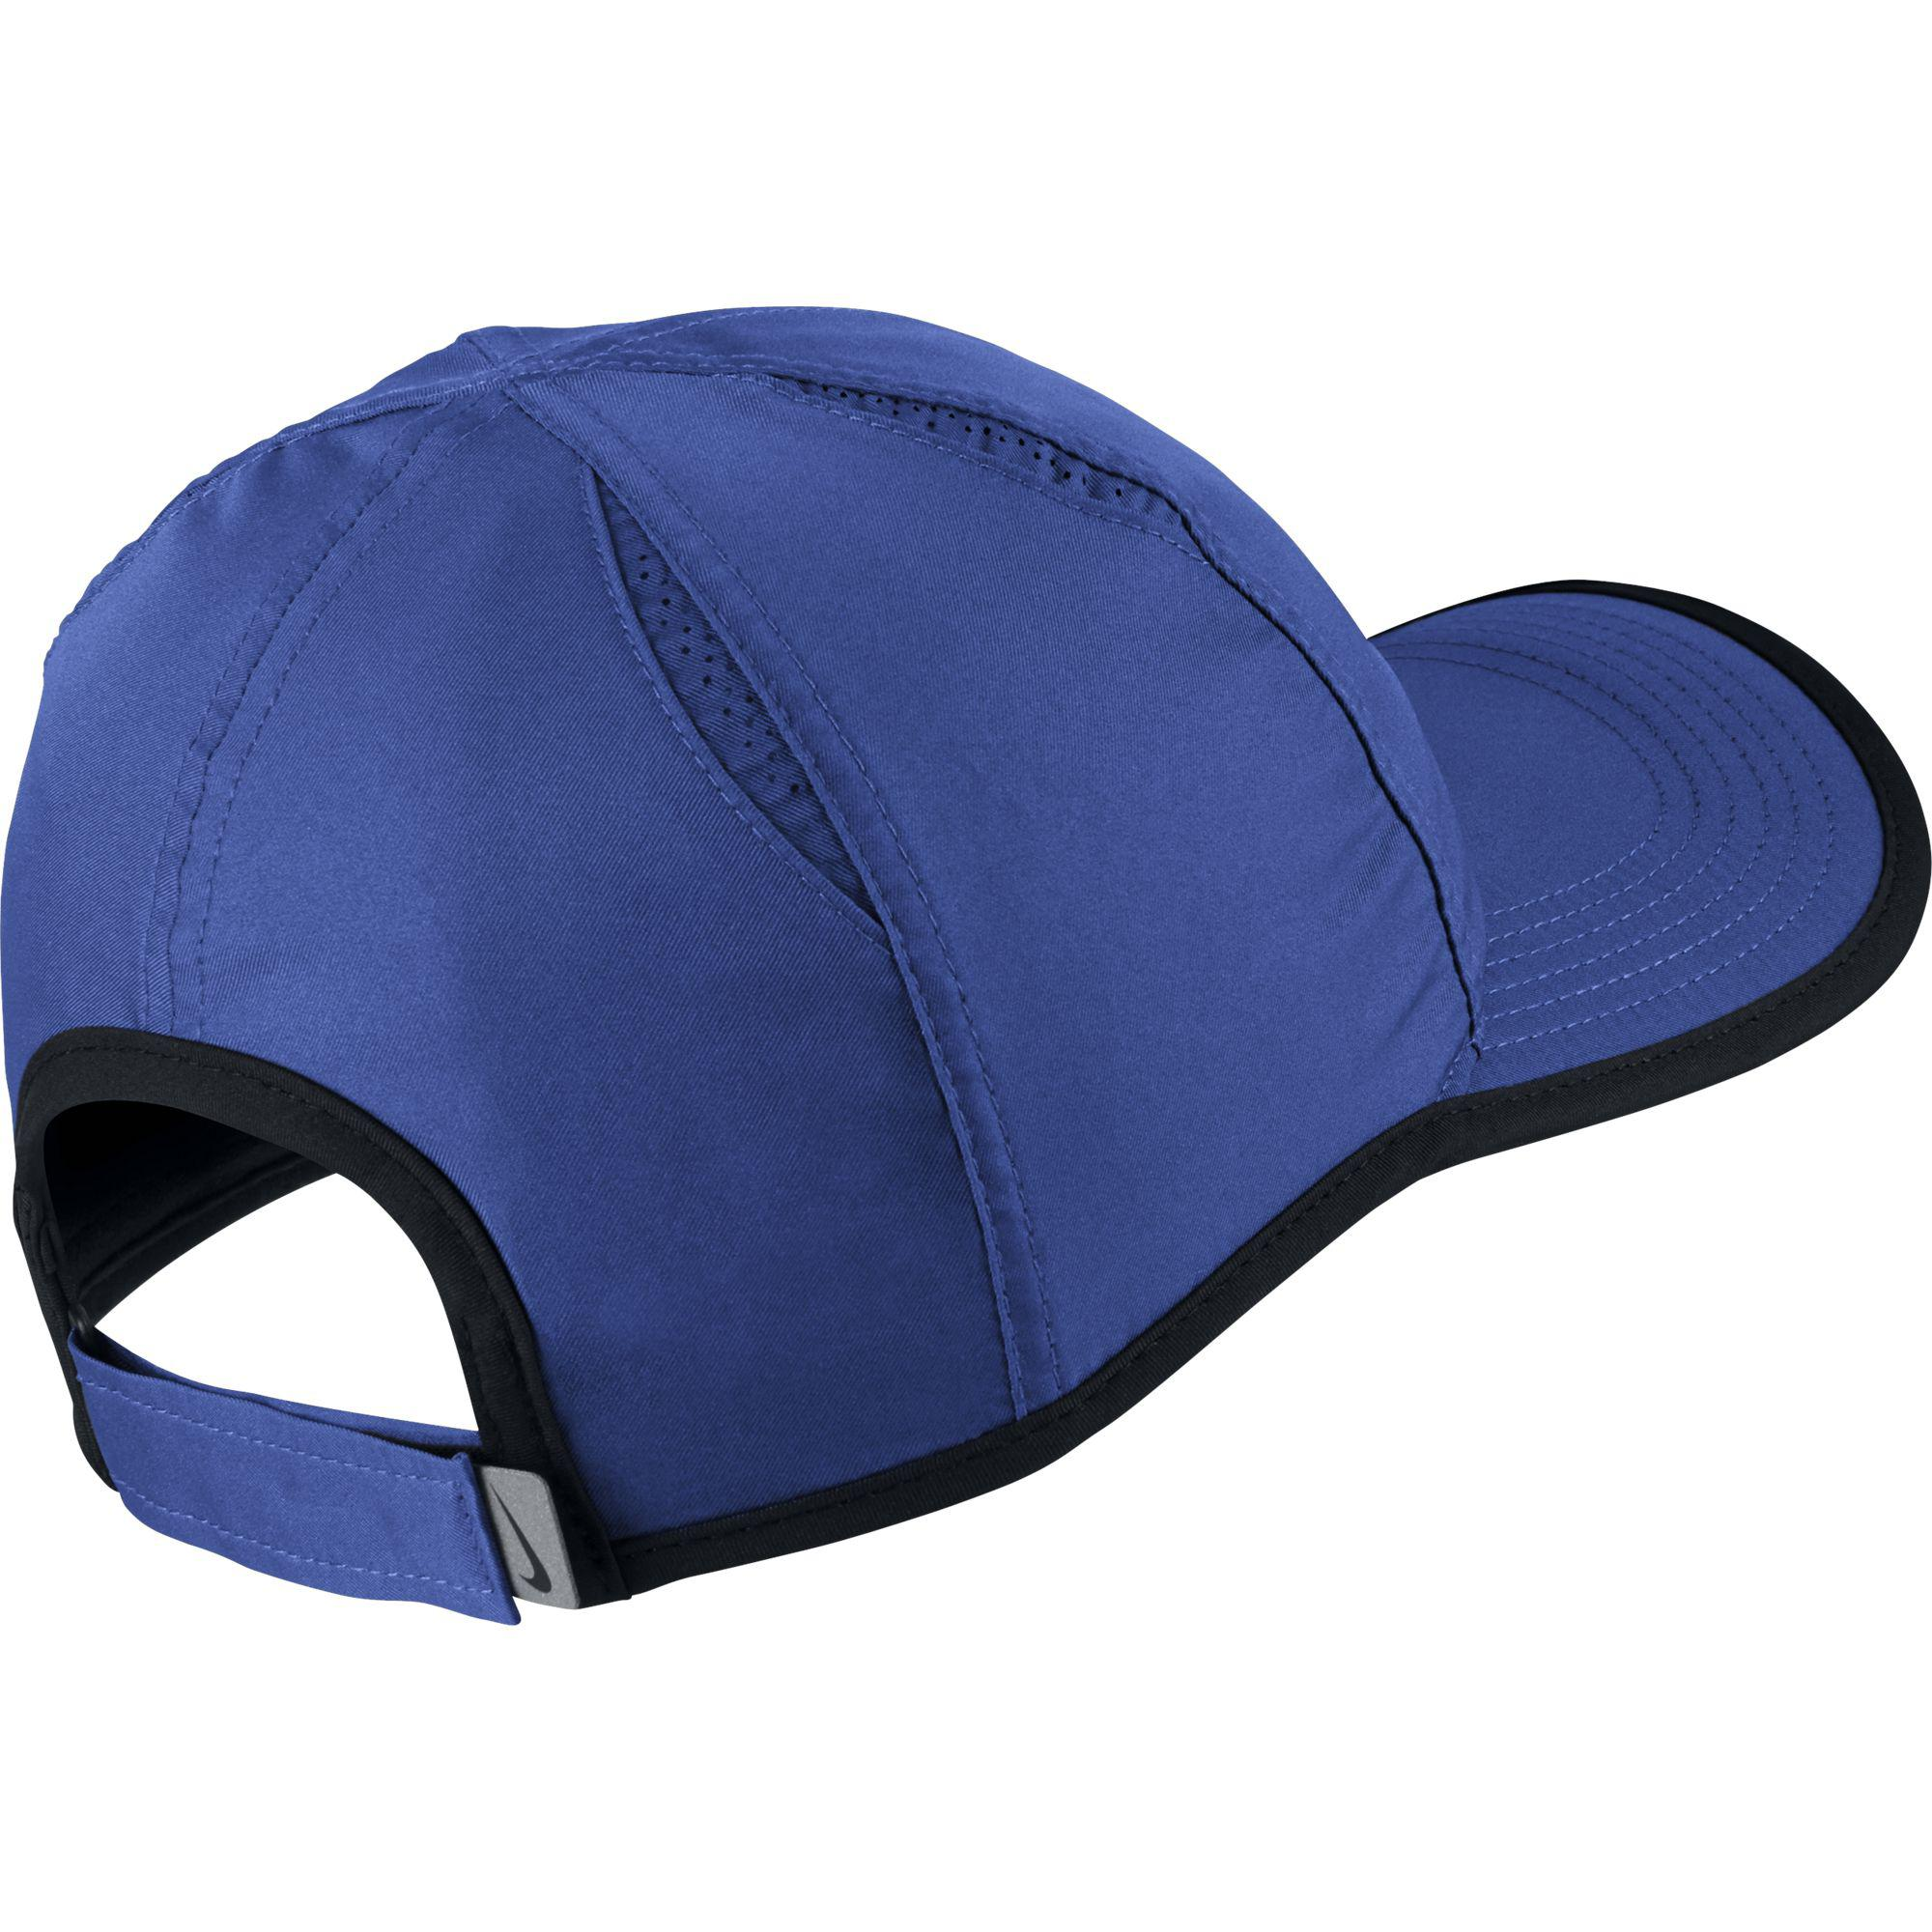 sale retailer bc97f 785d7 Nike Featherlight Adjustable Cap - Game Royal